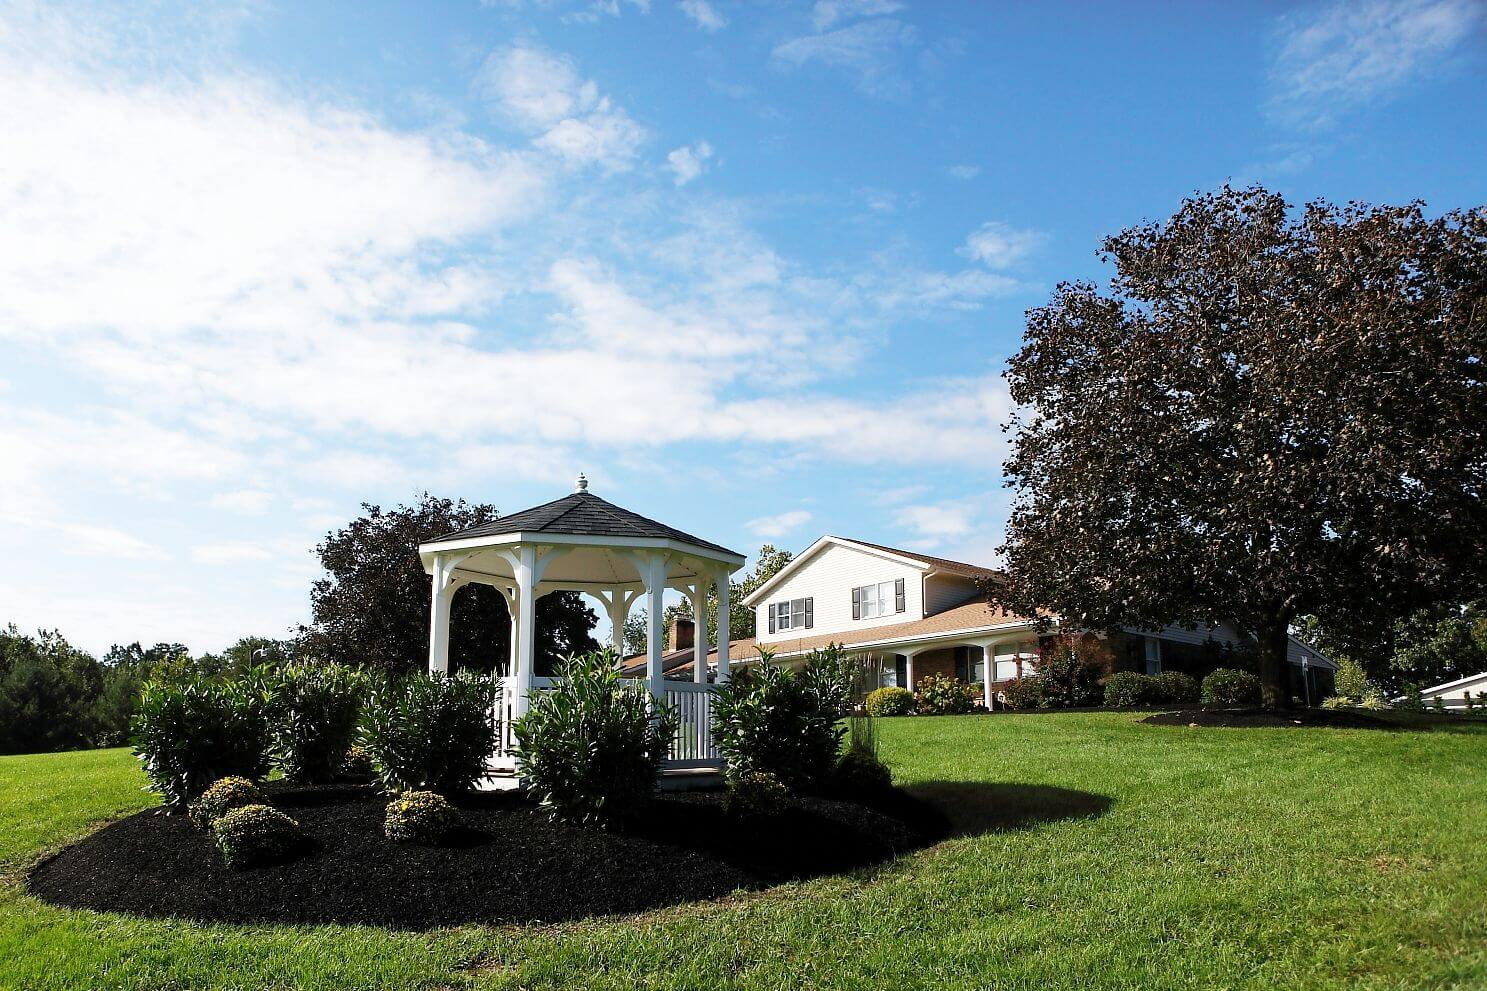 #10 Clarity Way, Pennsylvania | Luxury Rehab Centers | Image Source: reatment-facilities.healthgrove.com